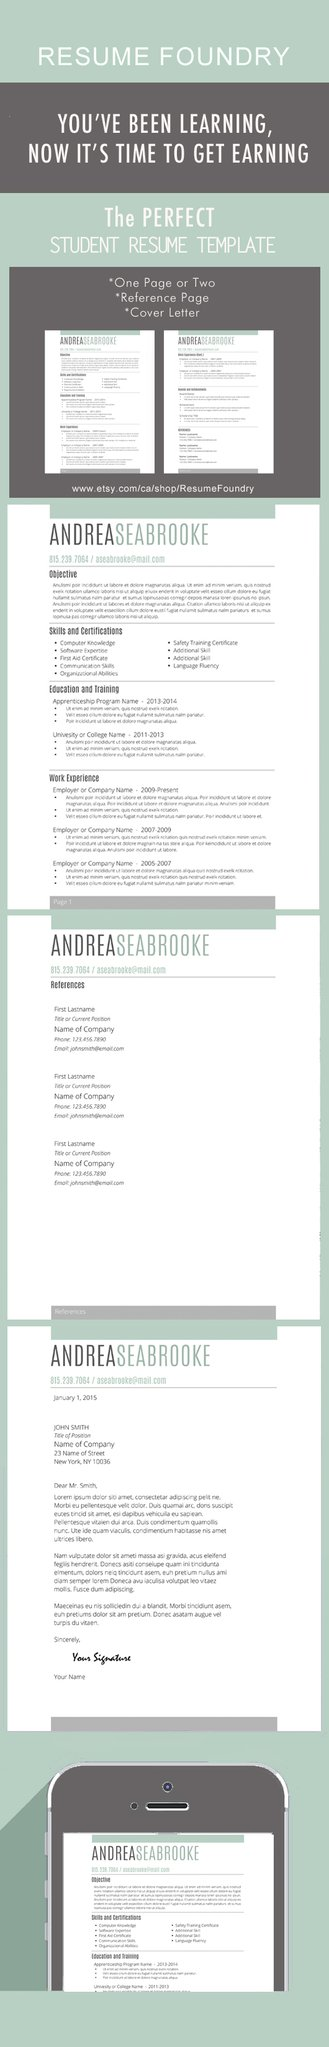 Awesome Resume Template for Students - One Page, Two Page, Cover - student resume cover letter